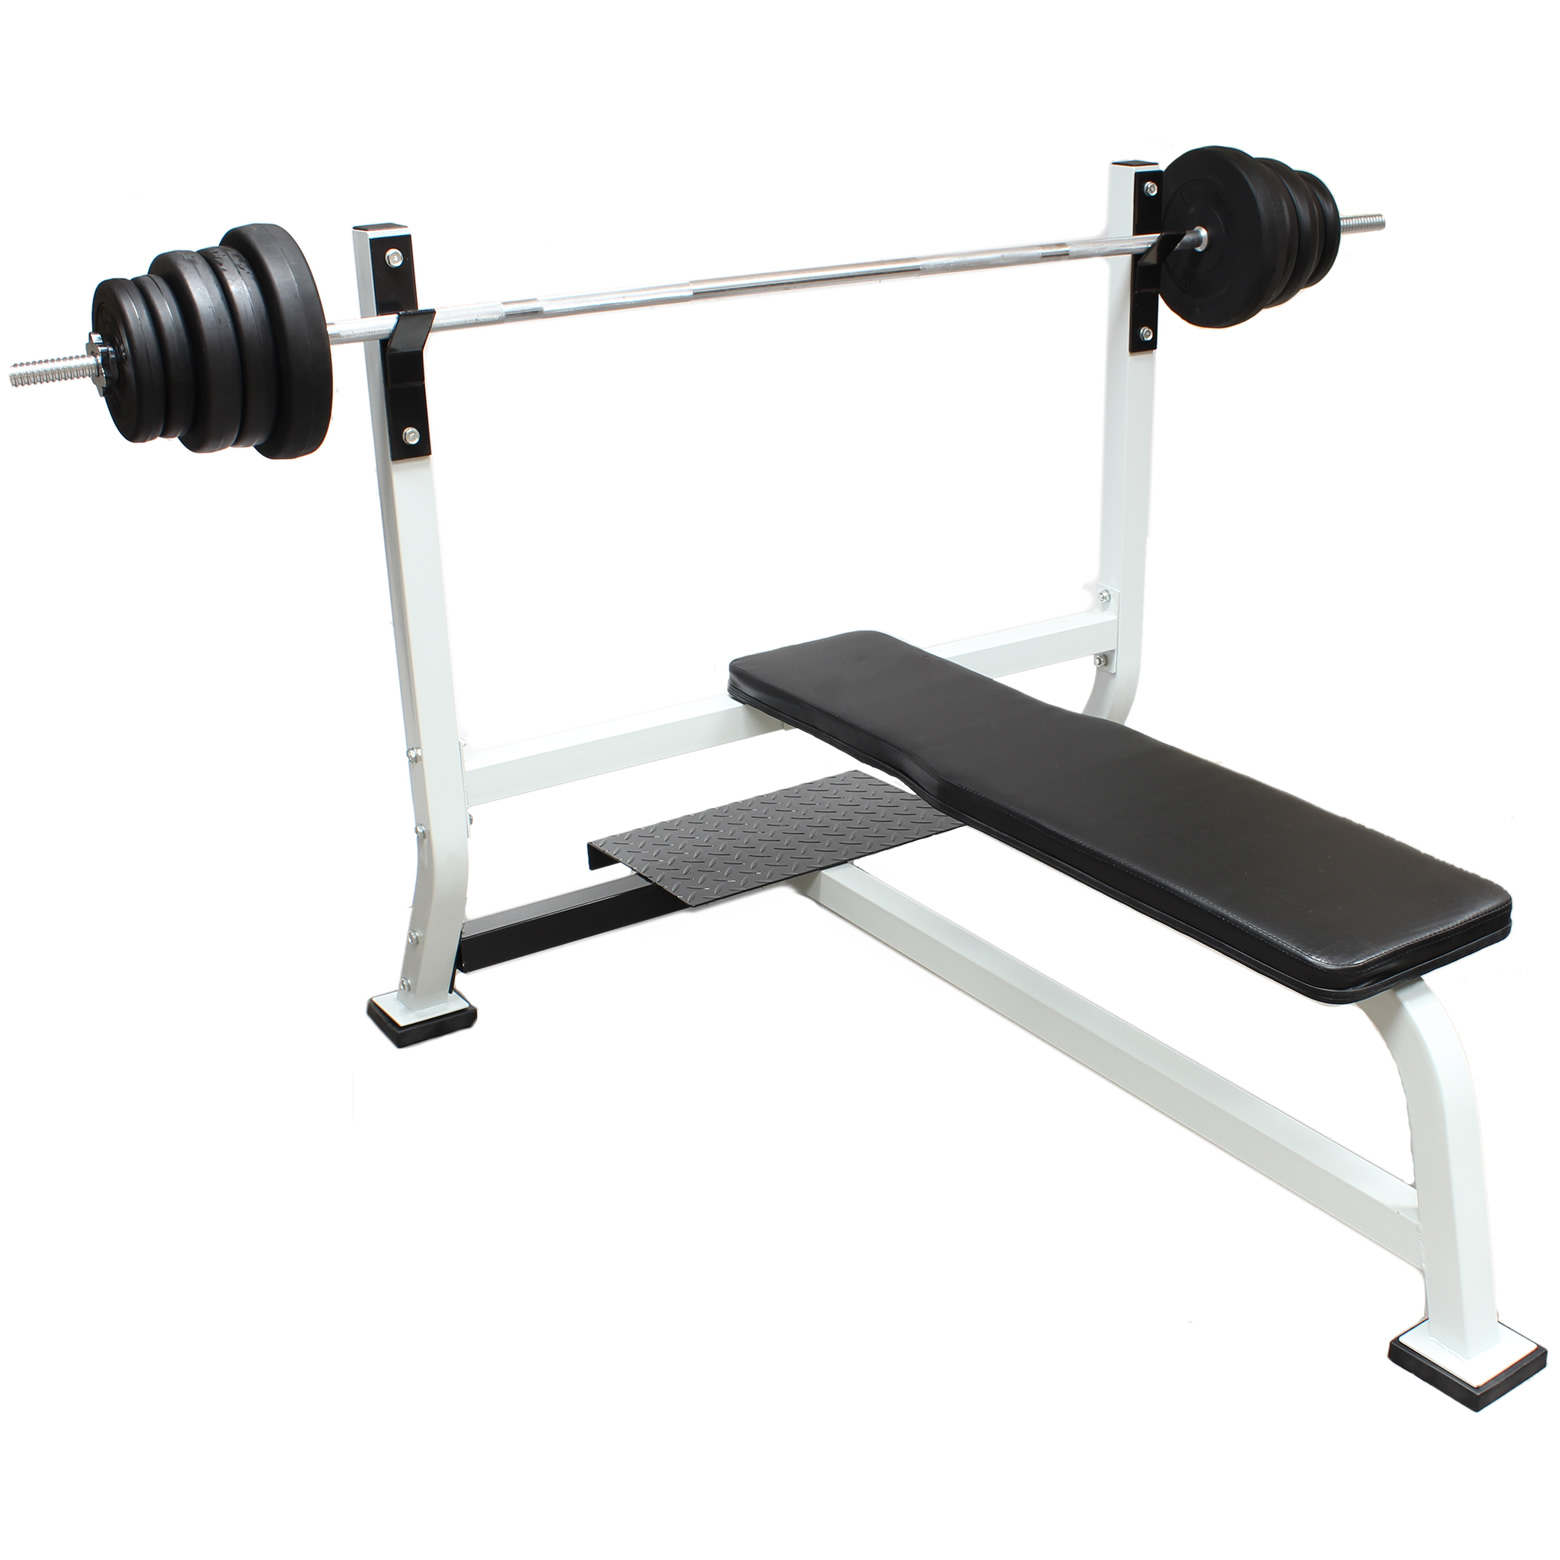 Gym Weight Lifting Bench For Shoulder Chest Press Home